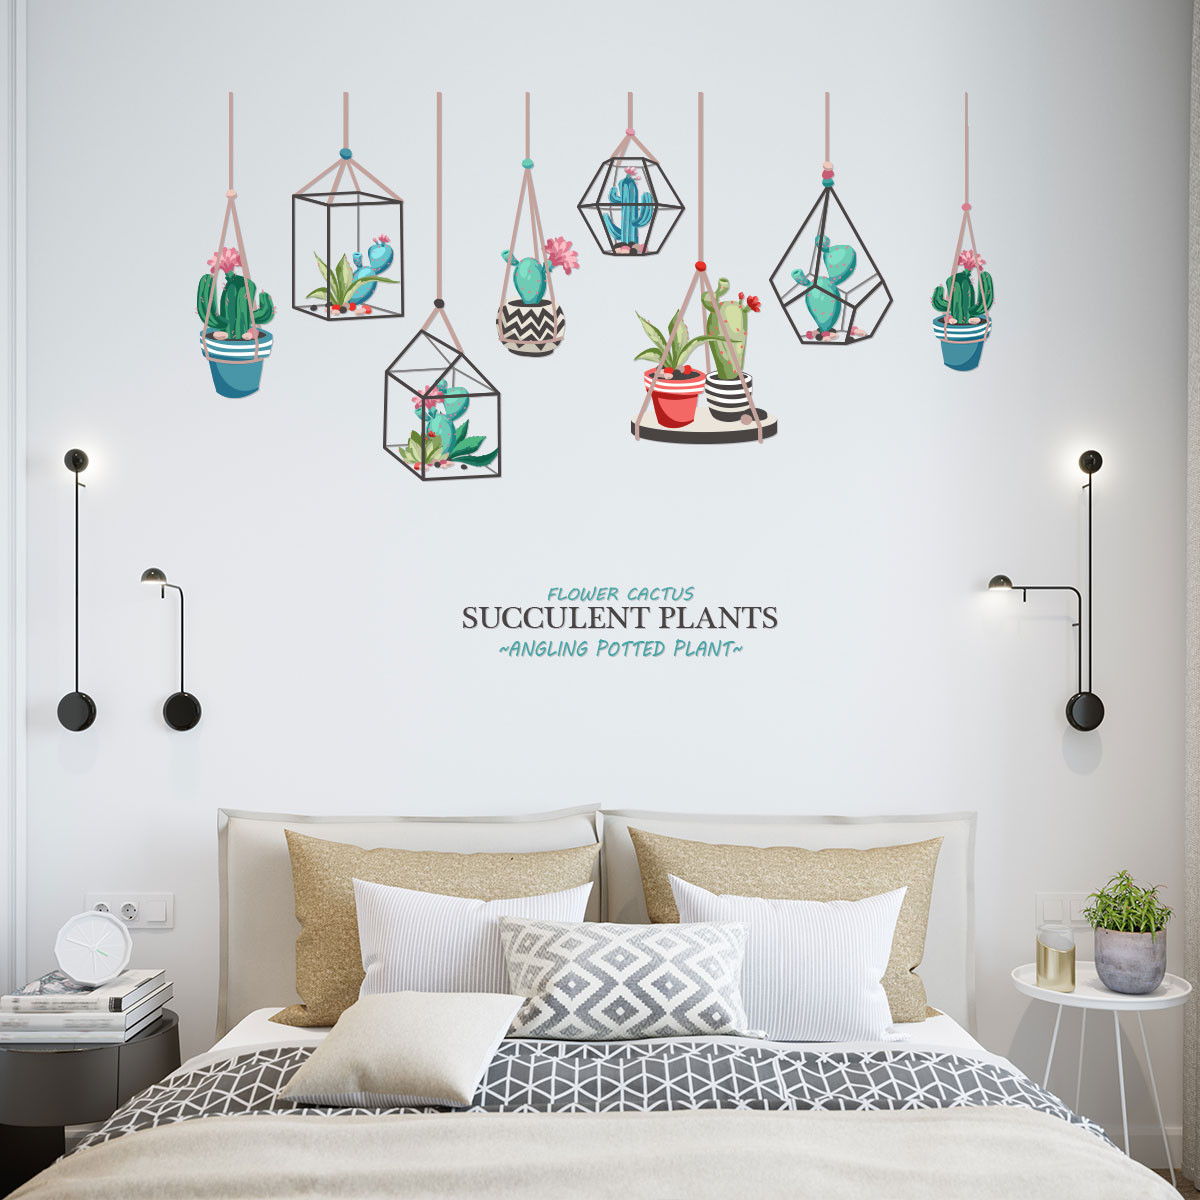 Diy Colorful Rooms: Aliexpress.com : Buy Colorful Bird Cage Morning Of ZOO For